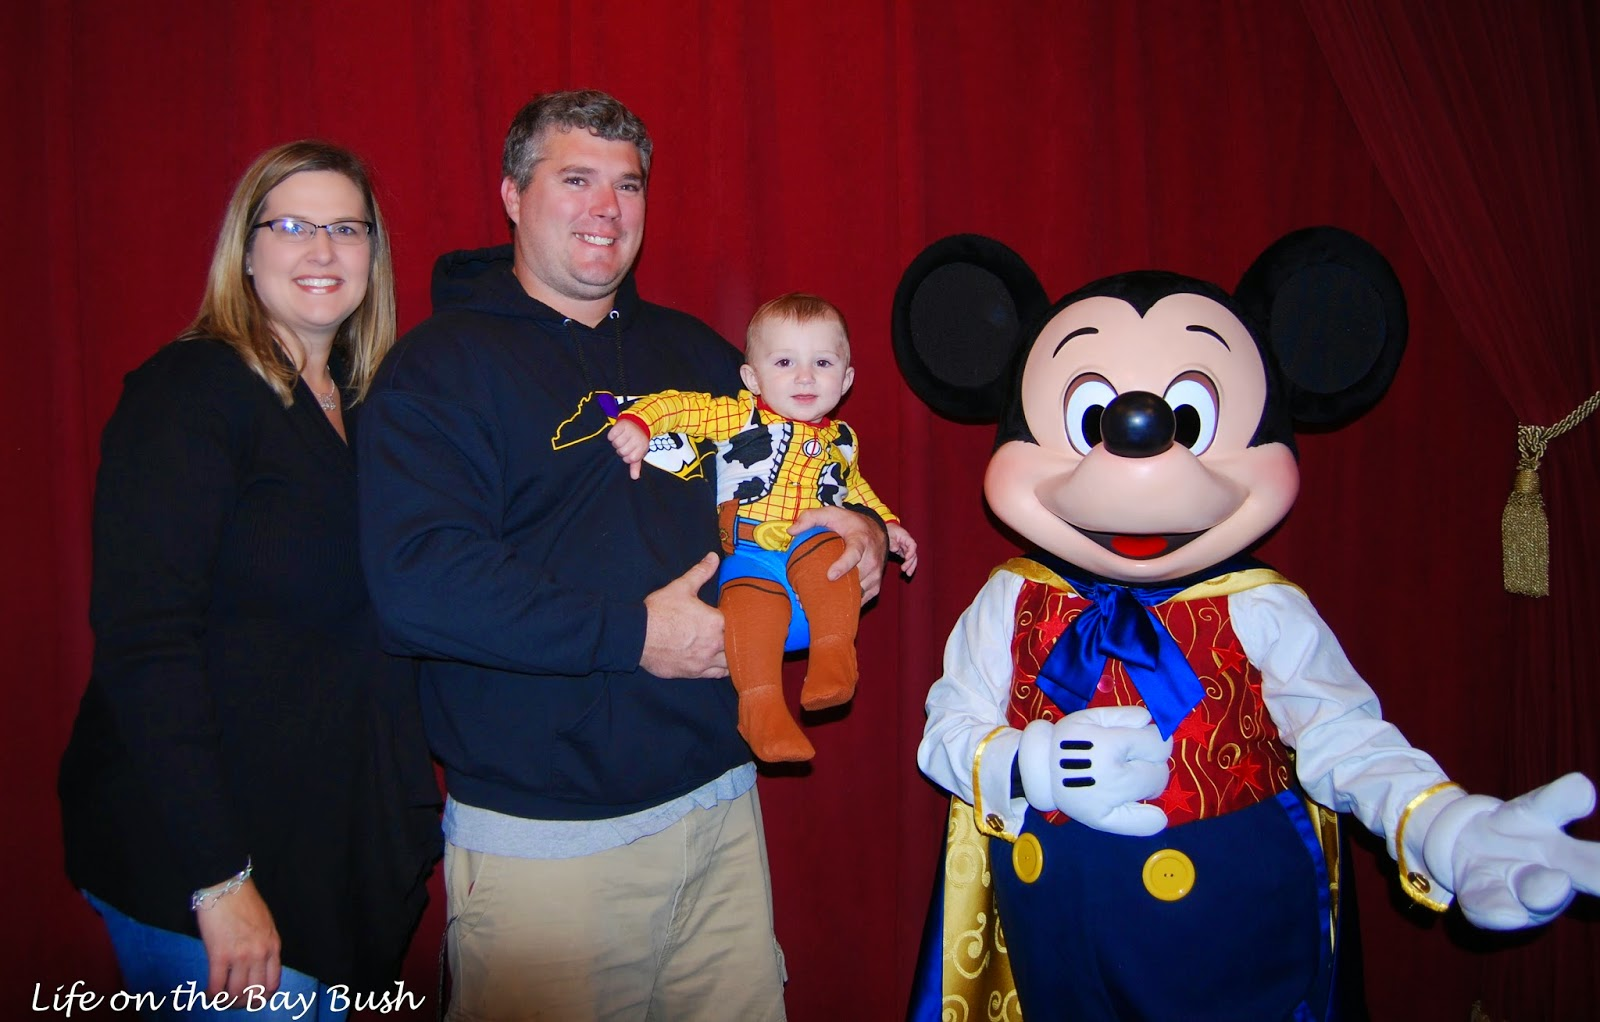 Meeting Mickey for the first time at the Magic Kingdom!